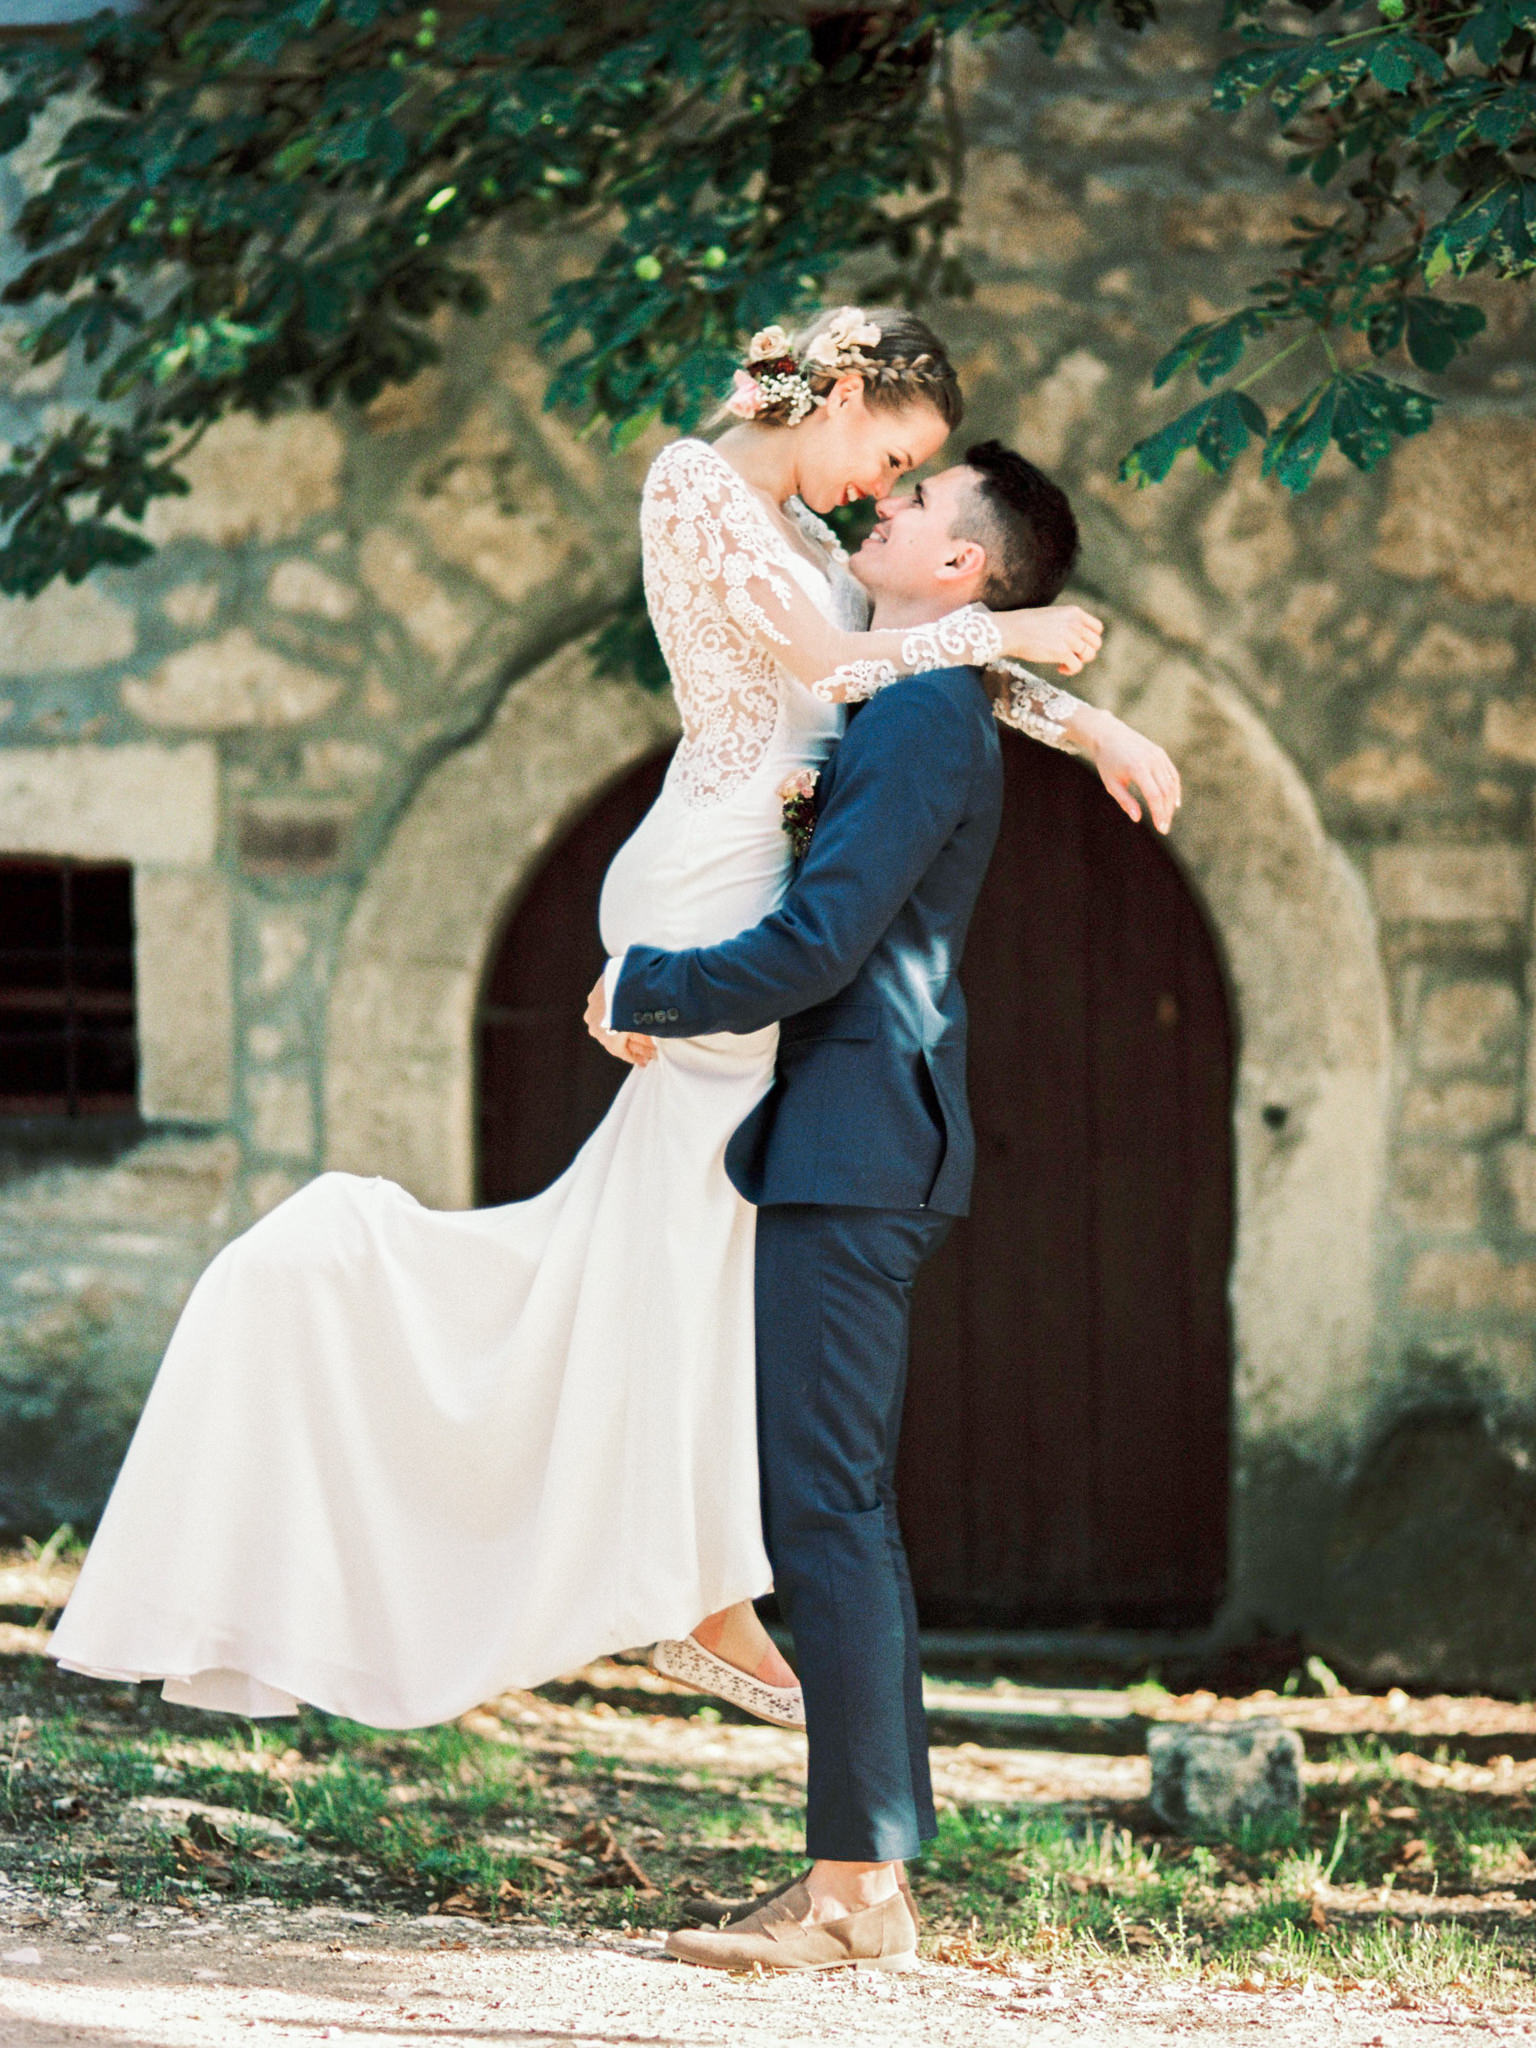 Groom lifting Bride in the air during Vineyard wedding